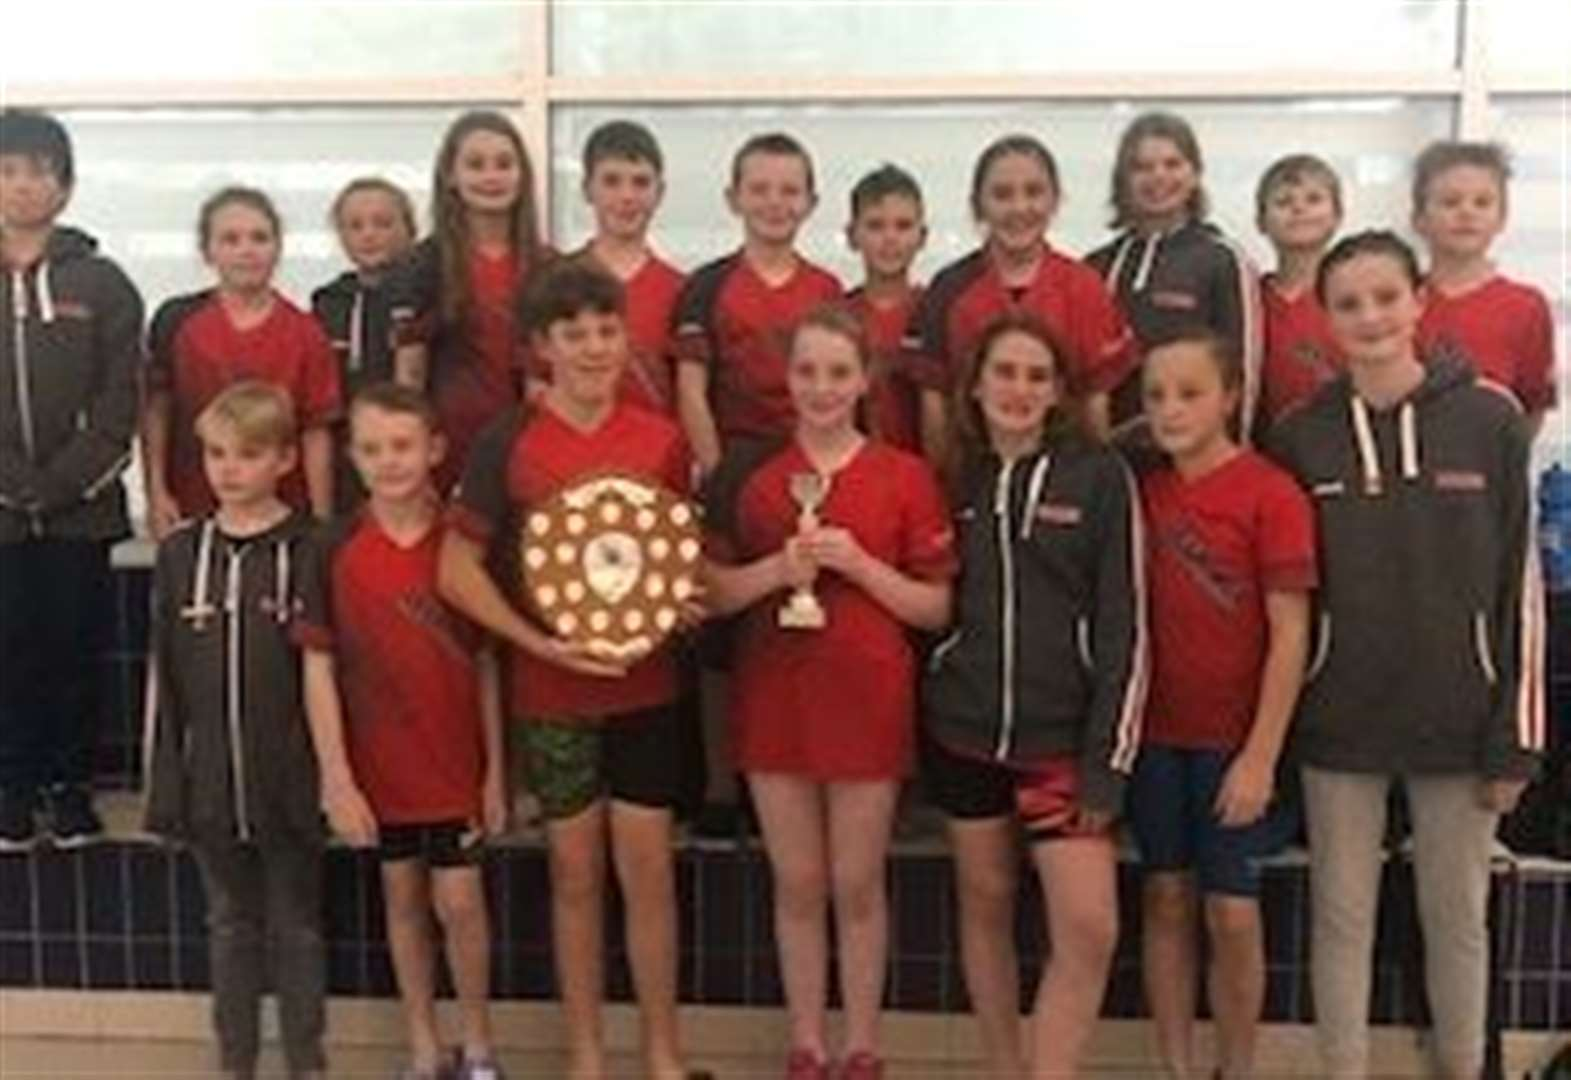 Trophy triumph for young Deepings swimmers after Fenland League glory